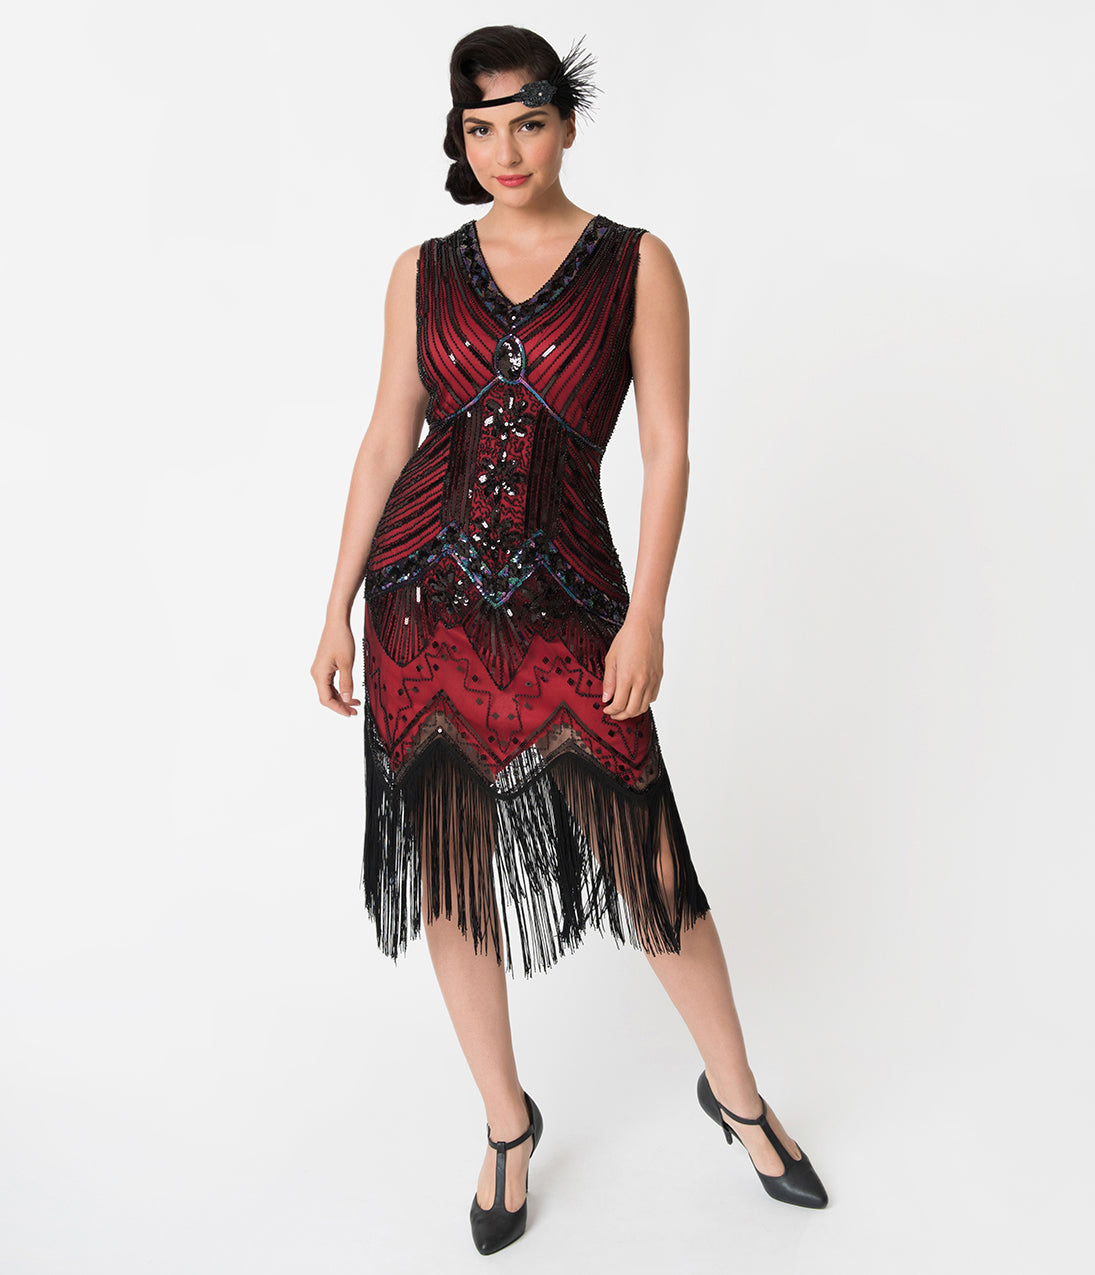 78c2d169eacb5 Roaring 20s Costumes- Flapper Costumes, Gangster Costumes Unique Vintage  1920S Deco Red Black Veronique